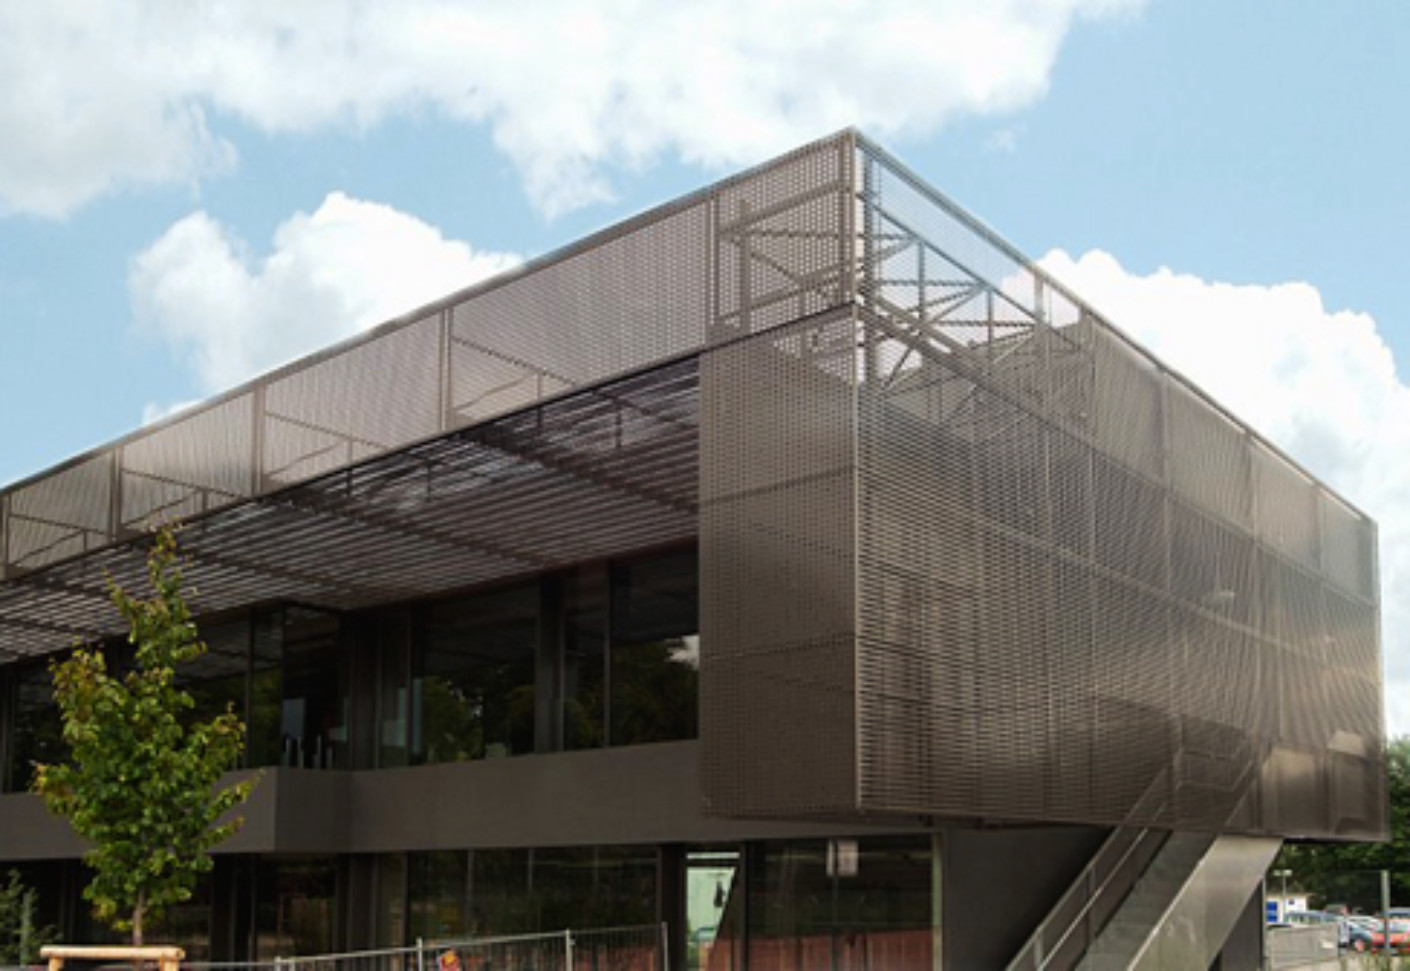 Perforated Cladding Havellandschule In Berlin By Rmig